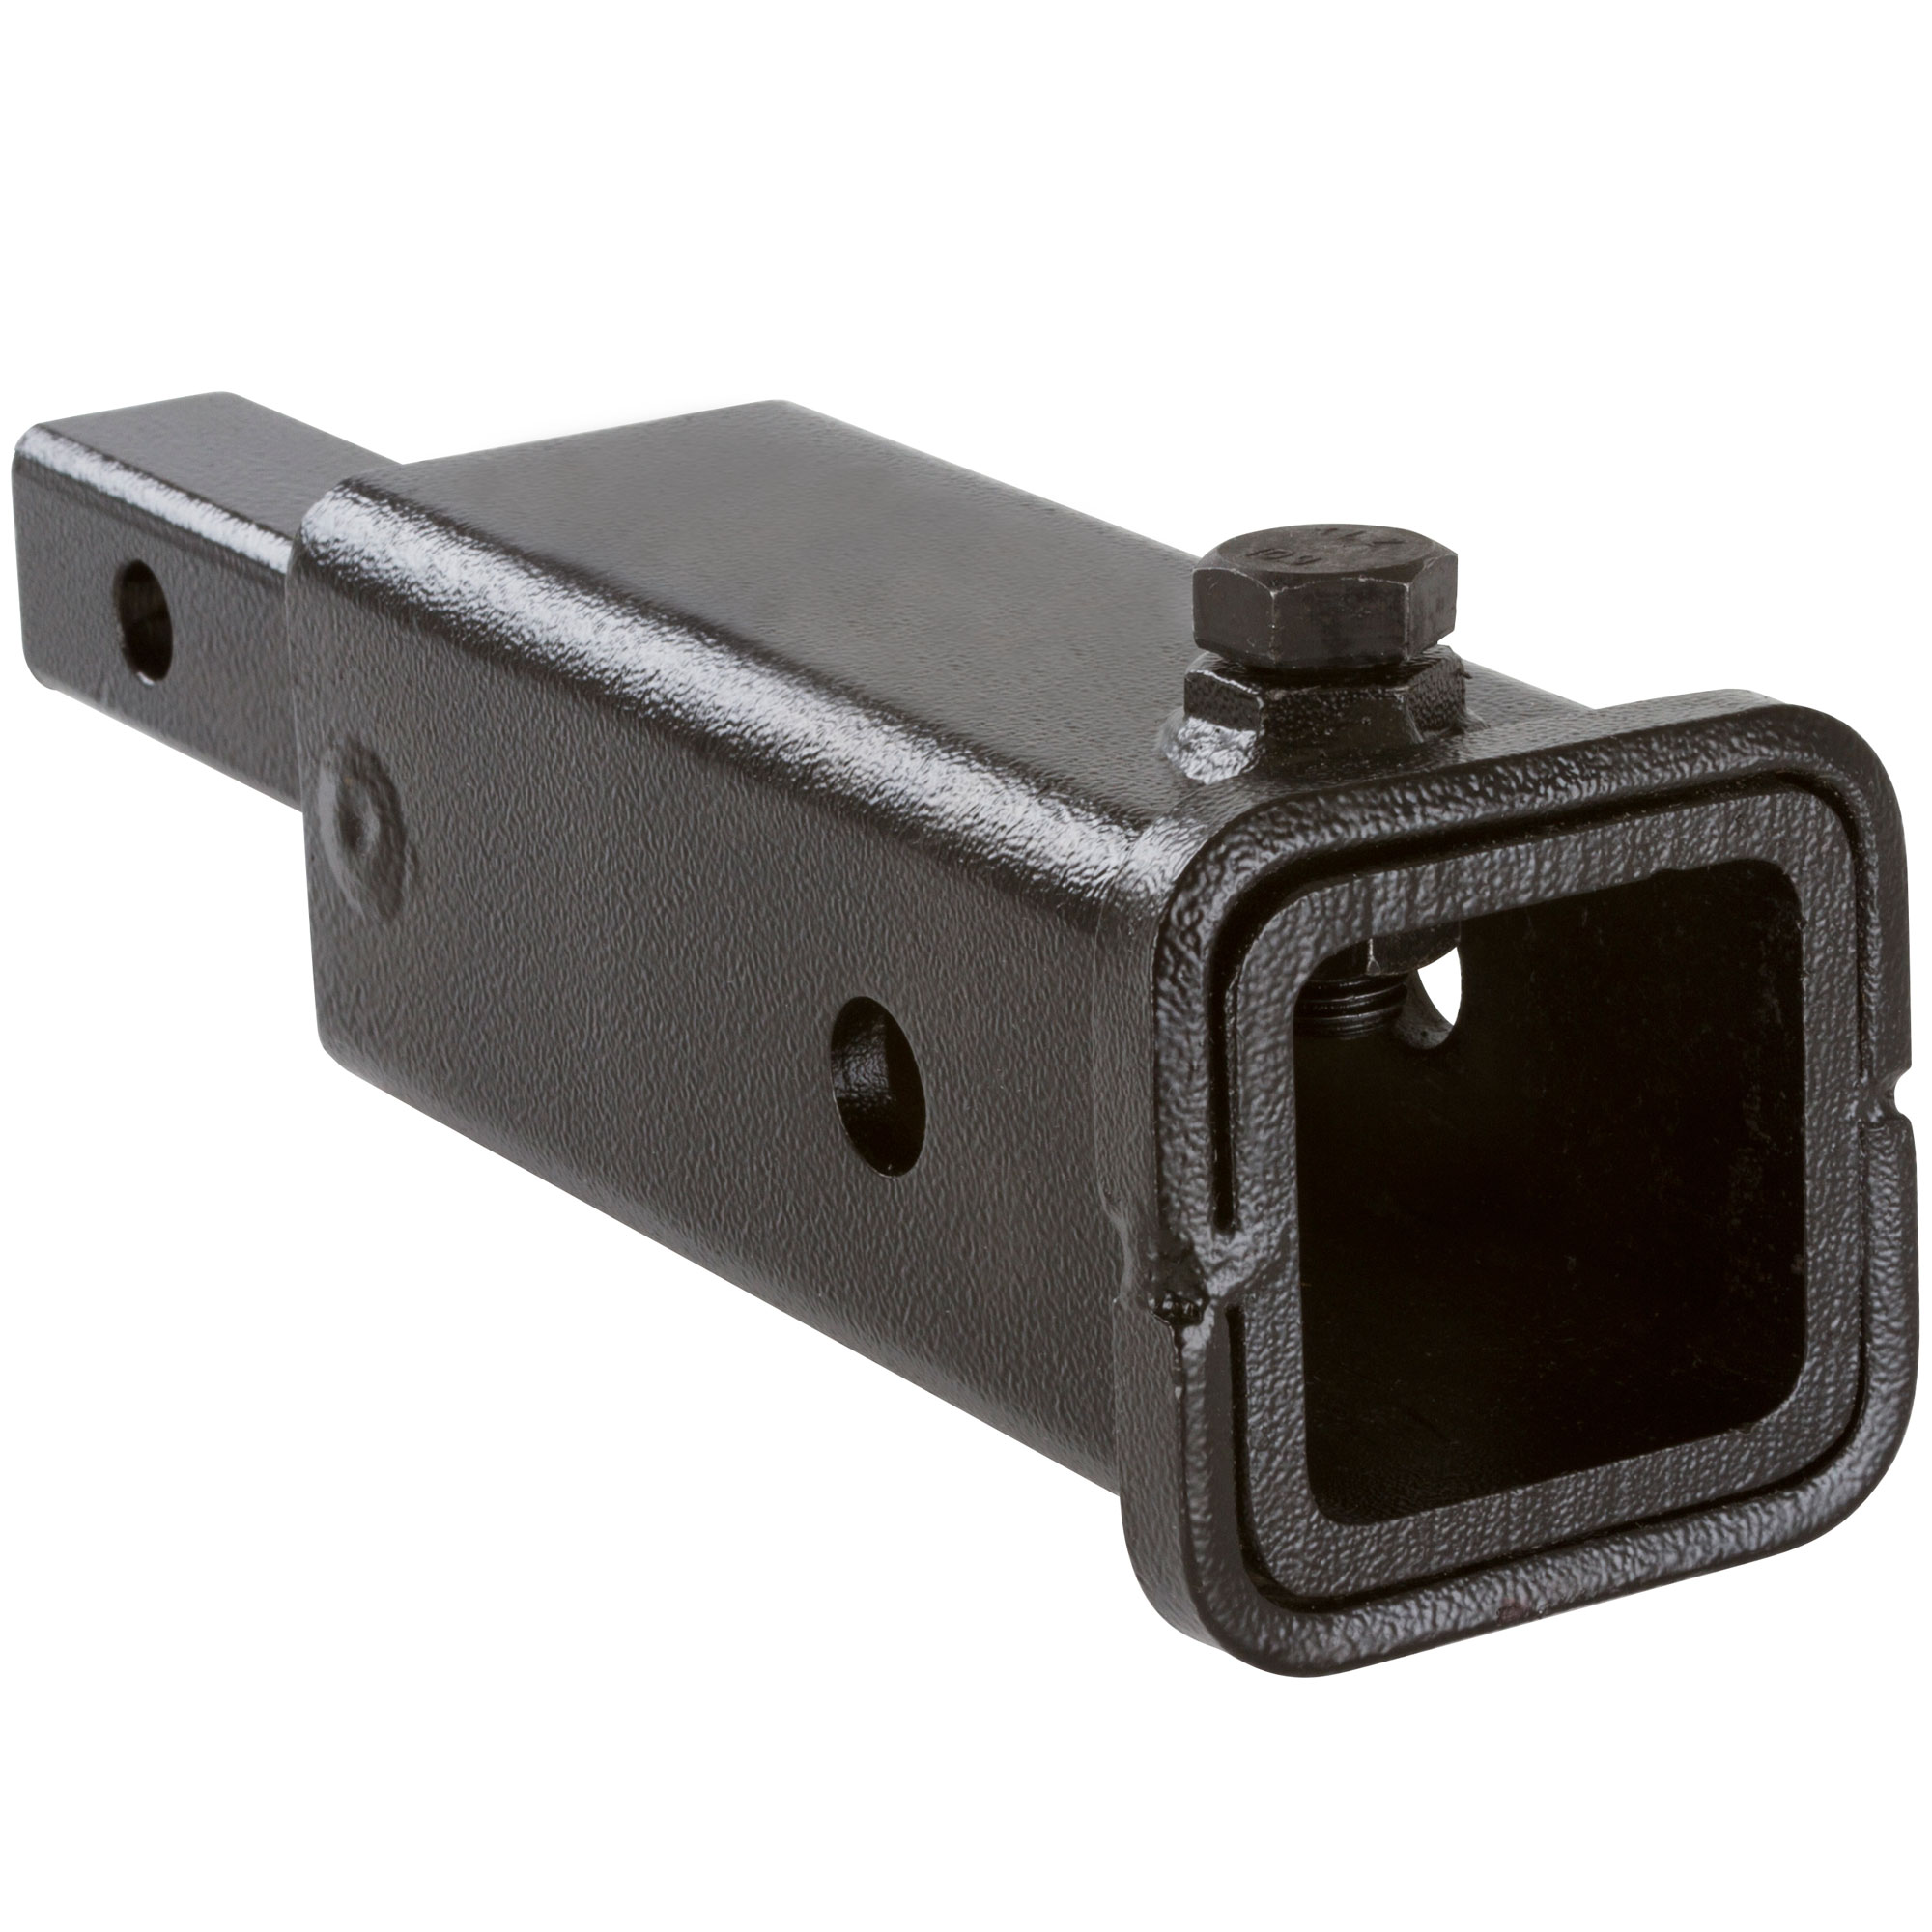 "1-1/4"" to 2"" Trailer Hitch Extension Adapter with Anti-Tilt Bolt"